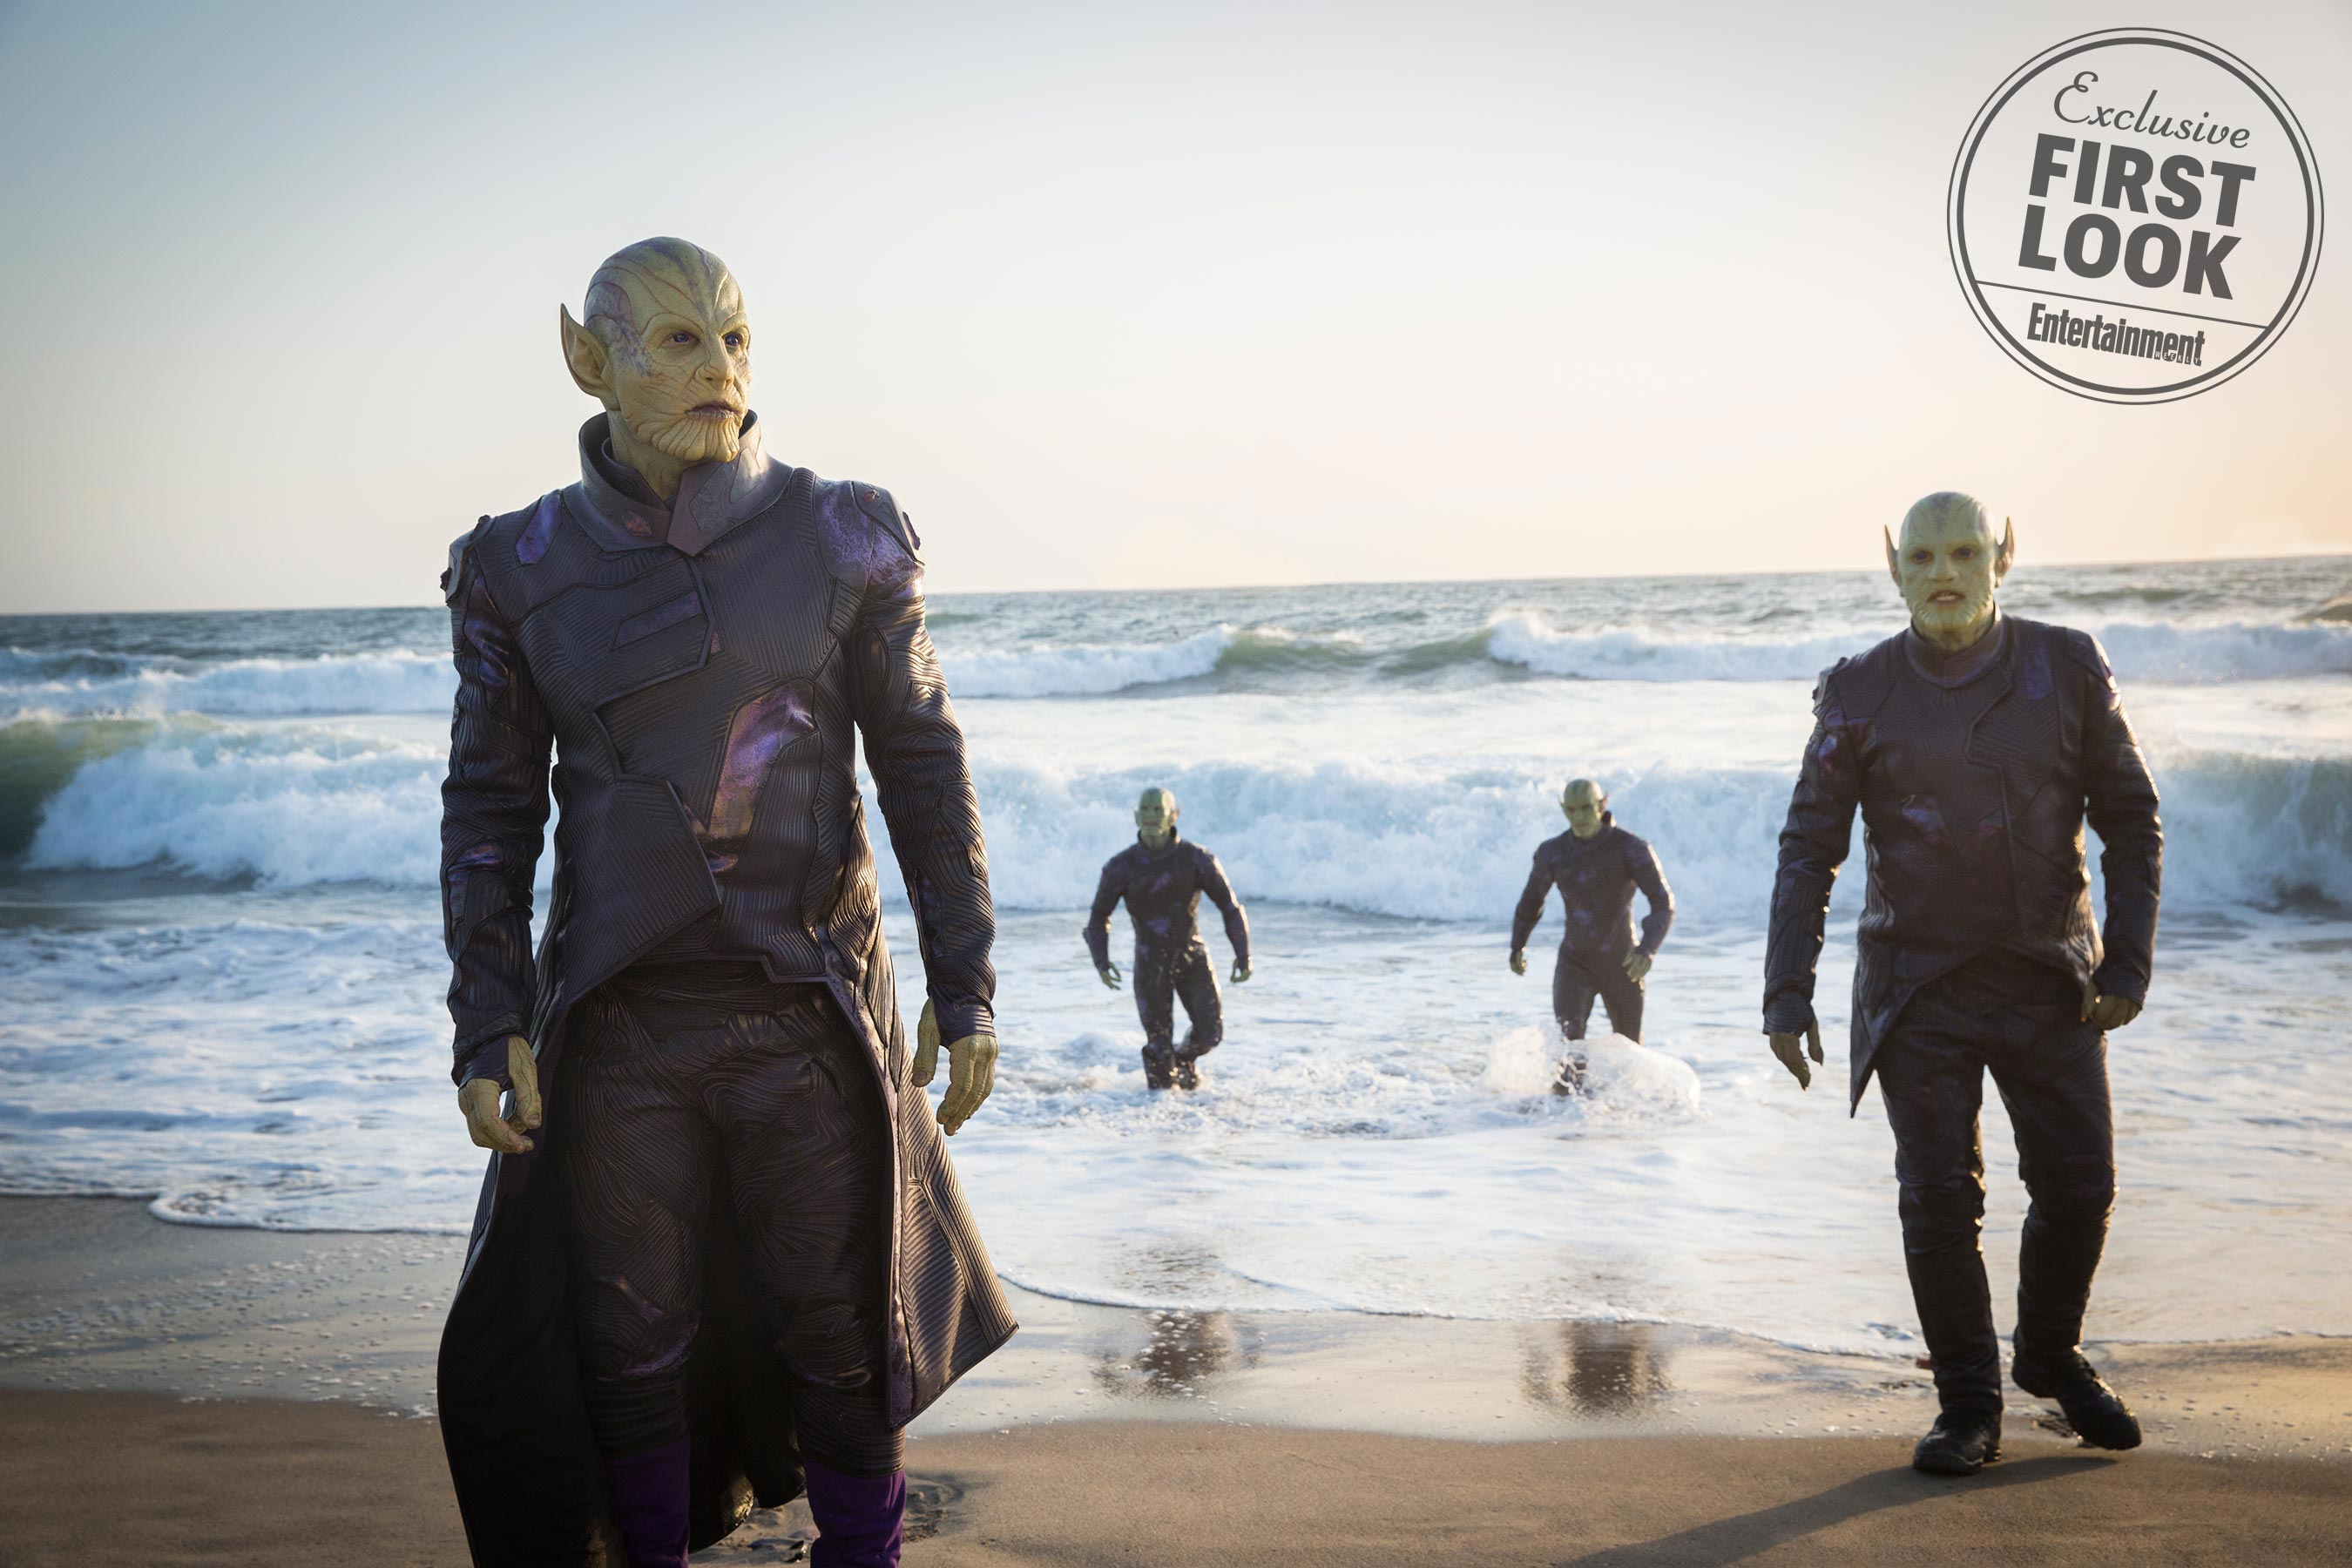 Photo du film Captain Marvel avec les Skrulls à la plage